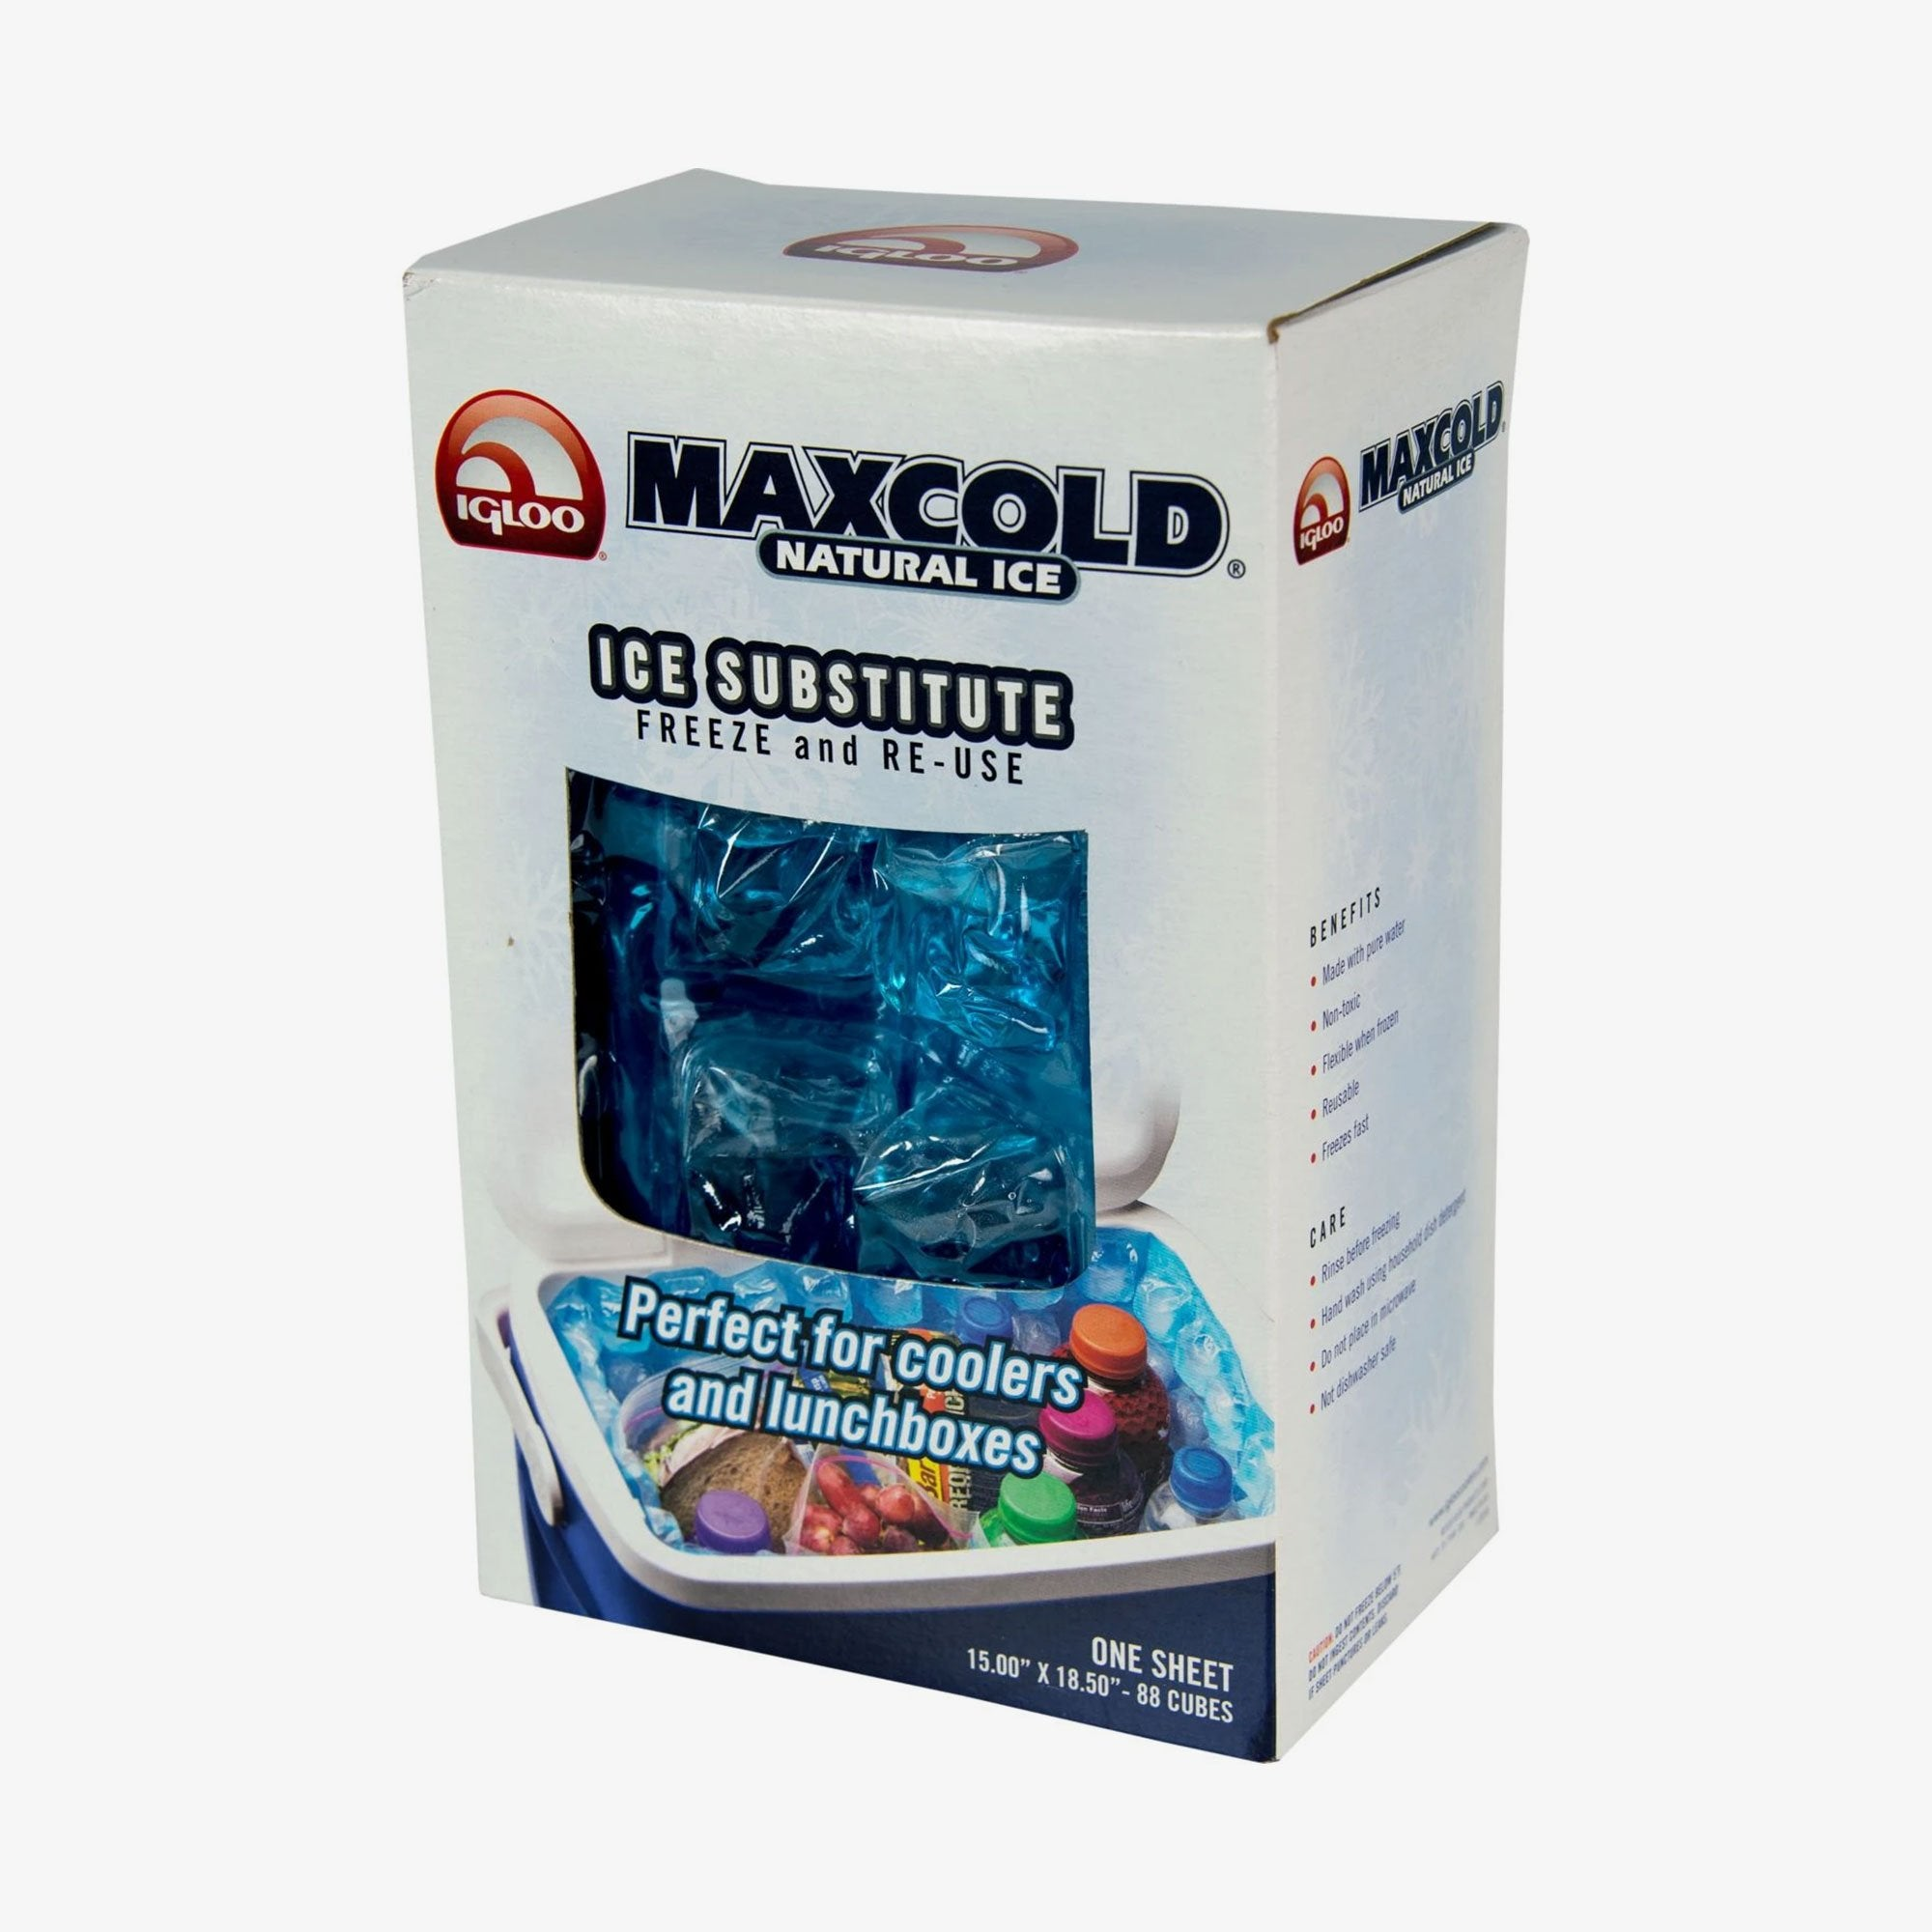 Large View | Maxcold Natural Ice Sheet 88 Cube in Blue at Igloo Ice Substitutes